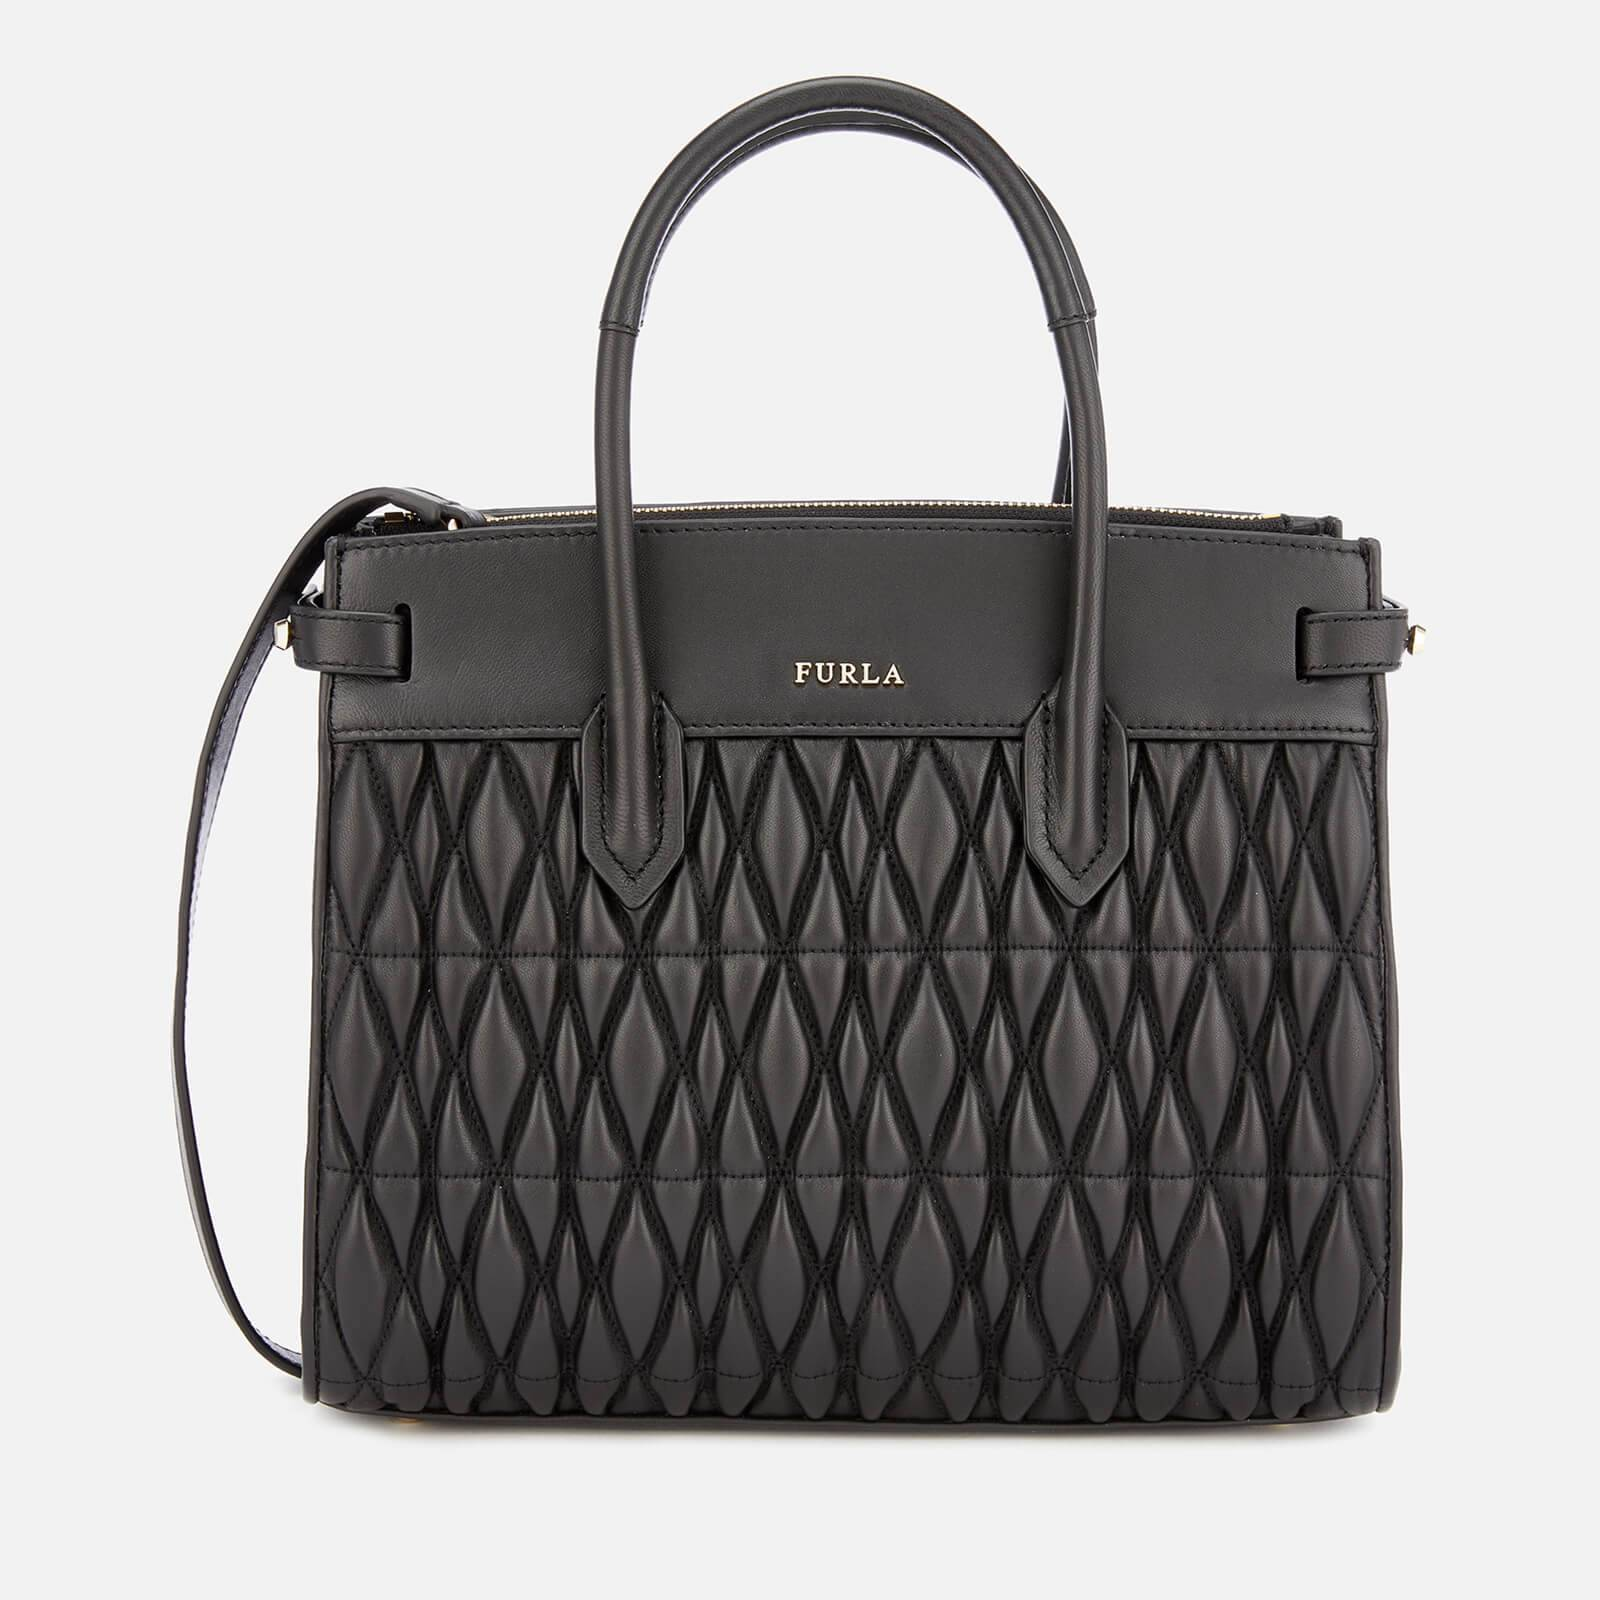 Furla Women's Pin Cometa Small Tote Bag - Black